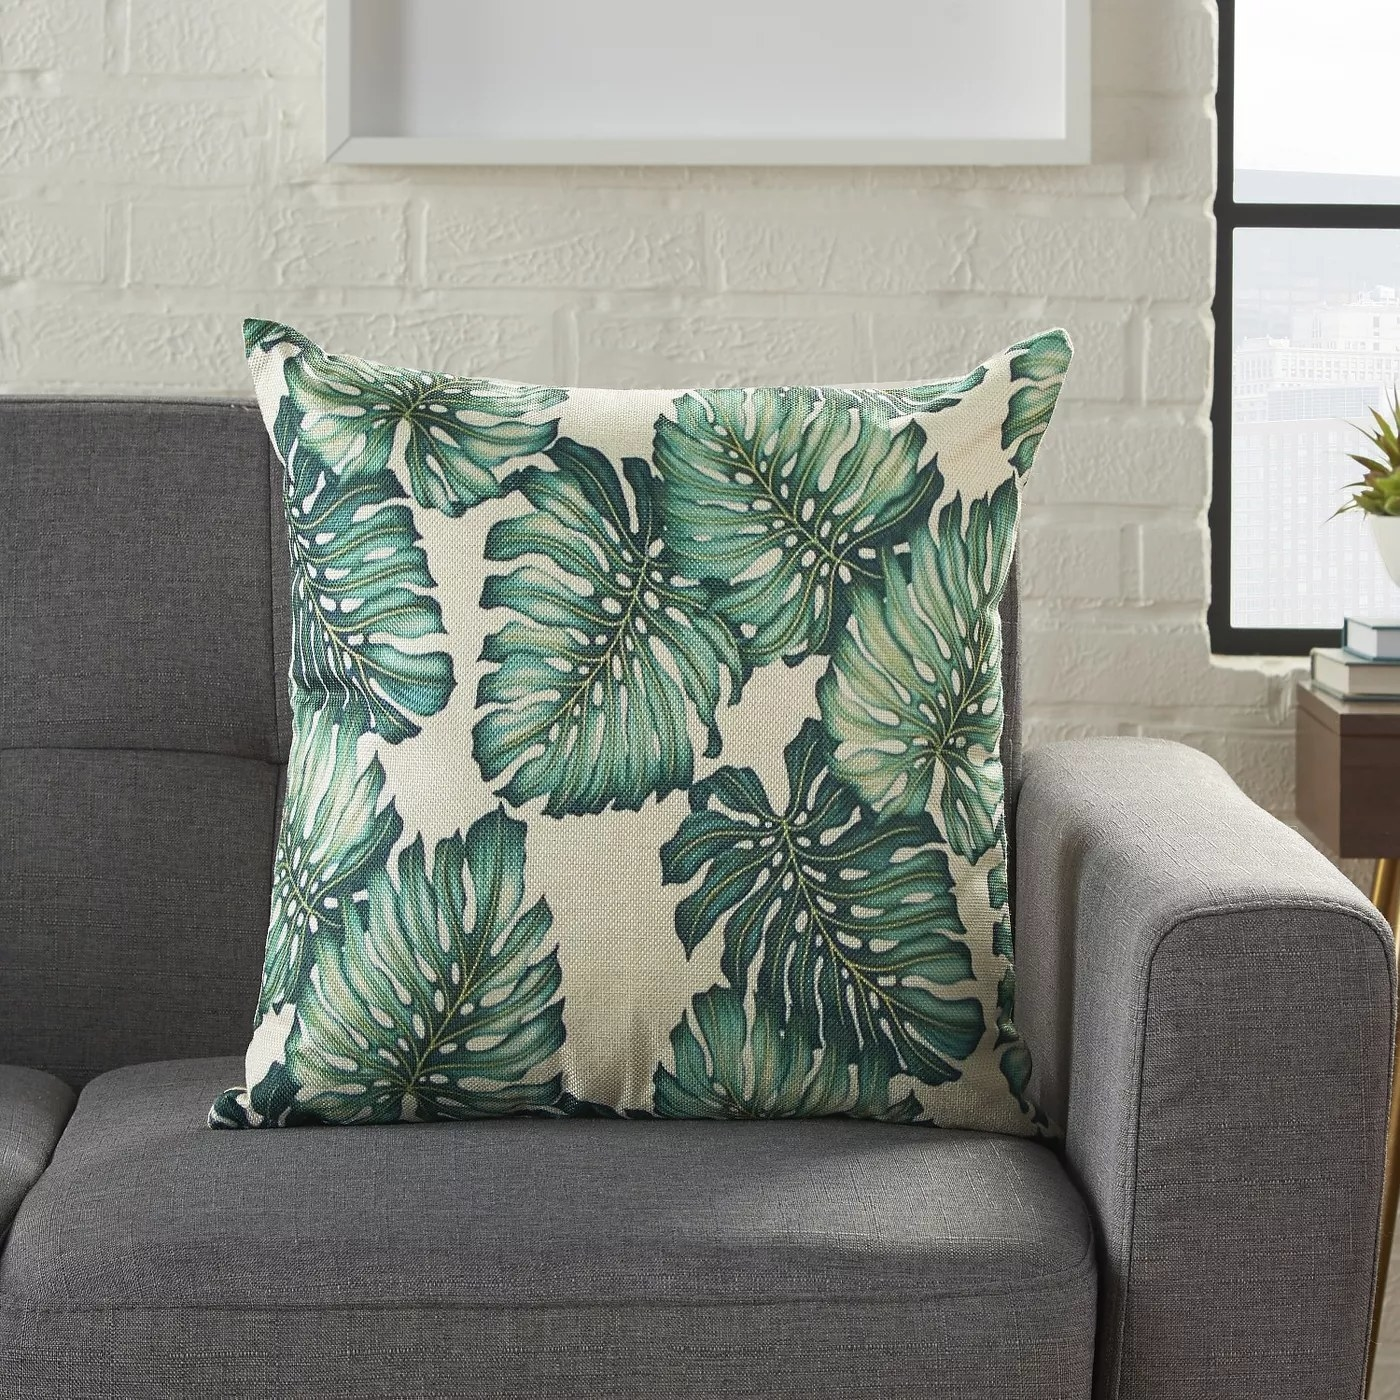 A white throw pillow with a palm leaves pattern